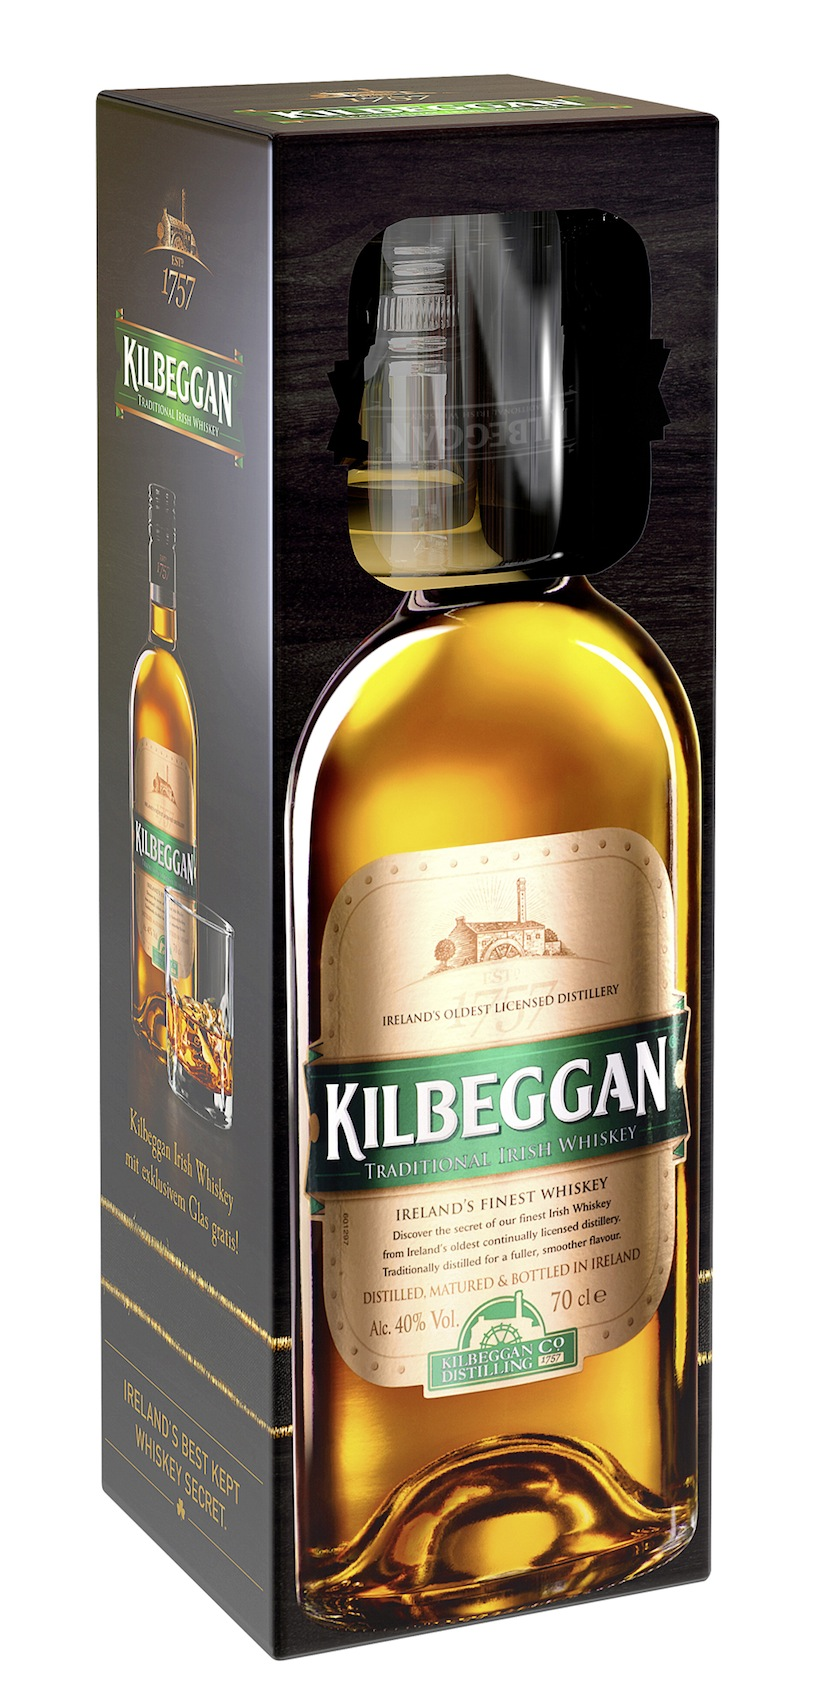 Kilbeggan_Irelands_Best_Kept_Whiskey_Secret_Gewinnspiel_2015_03